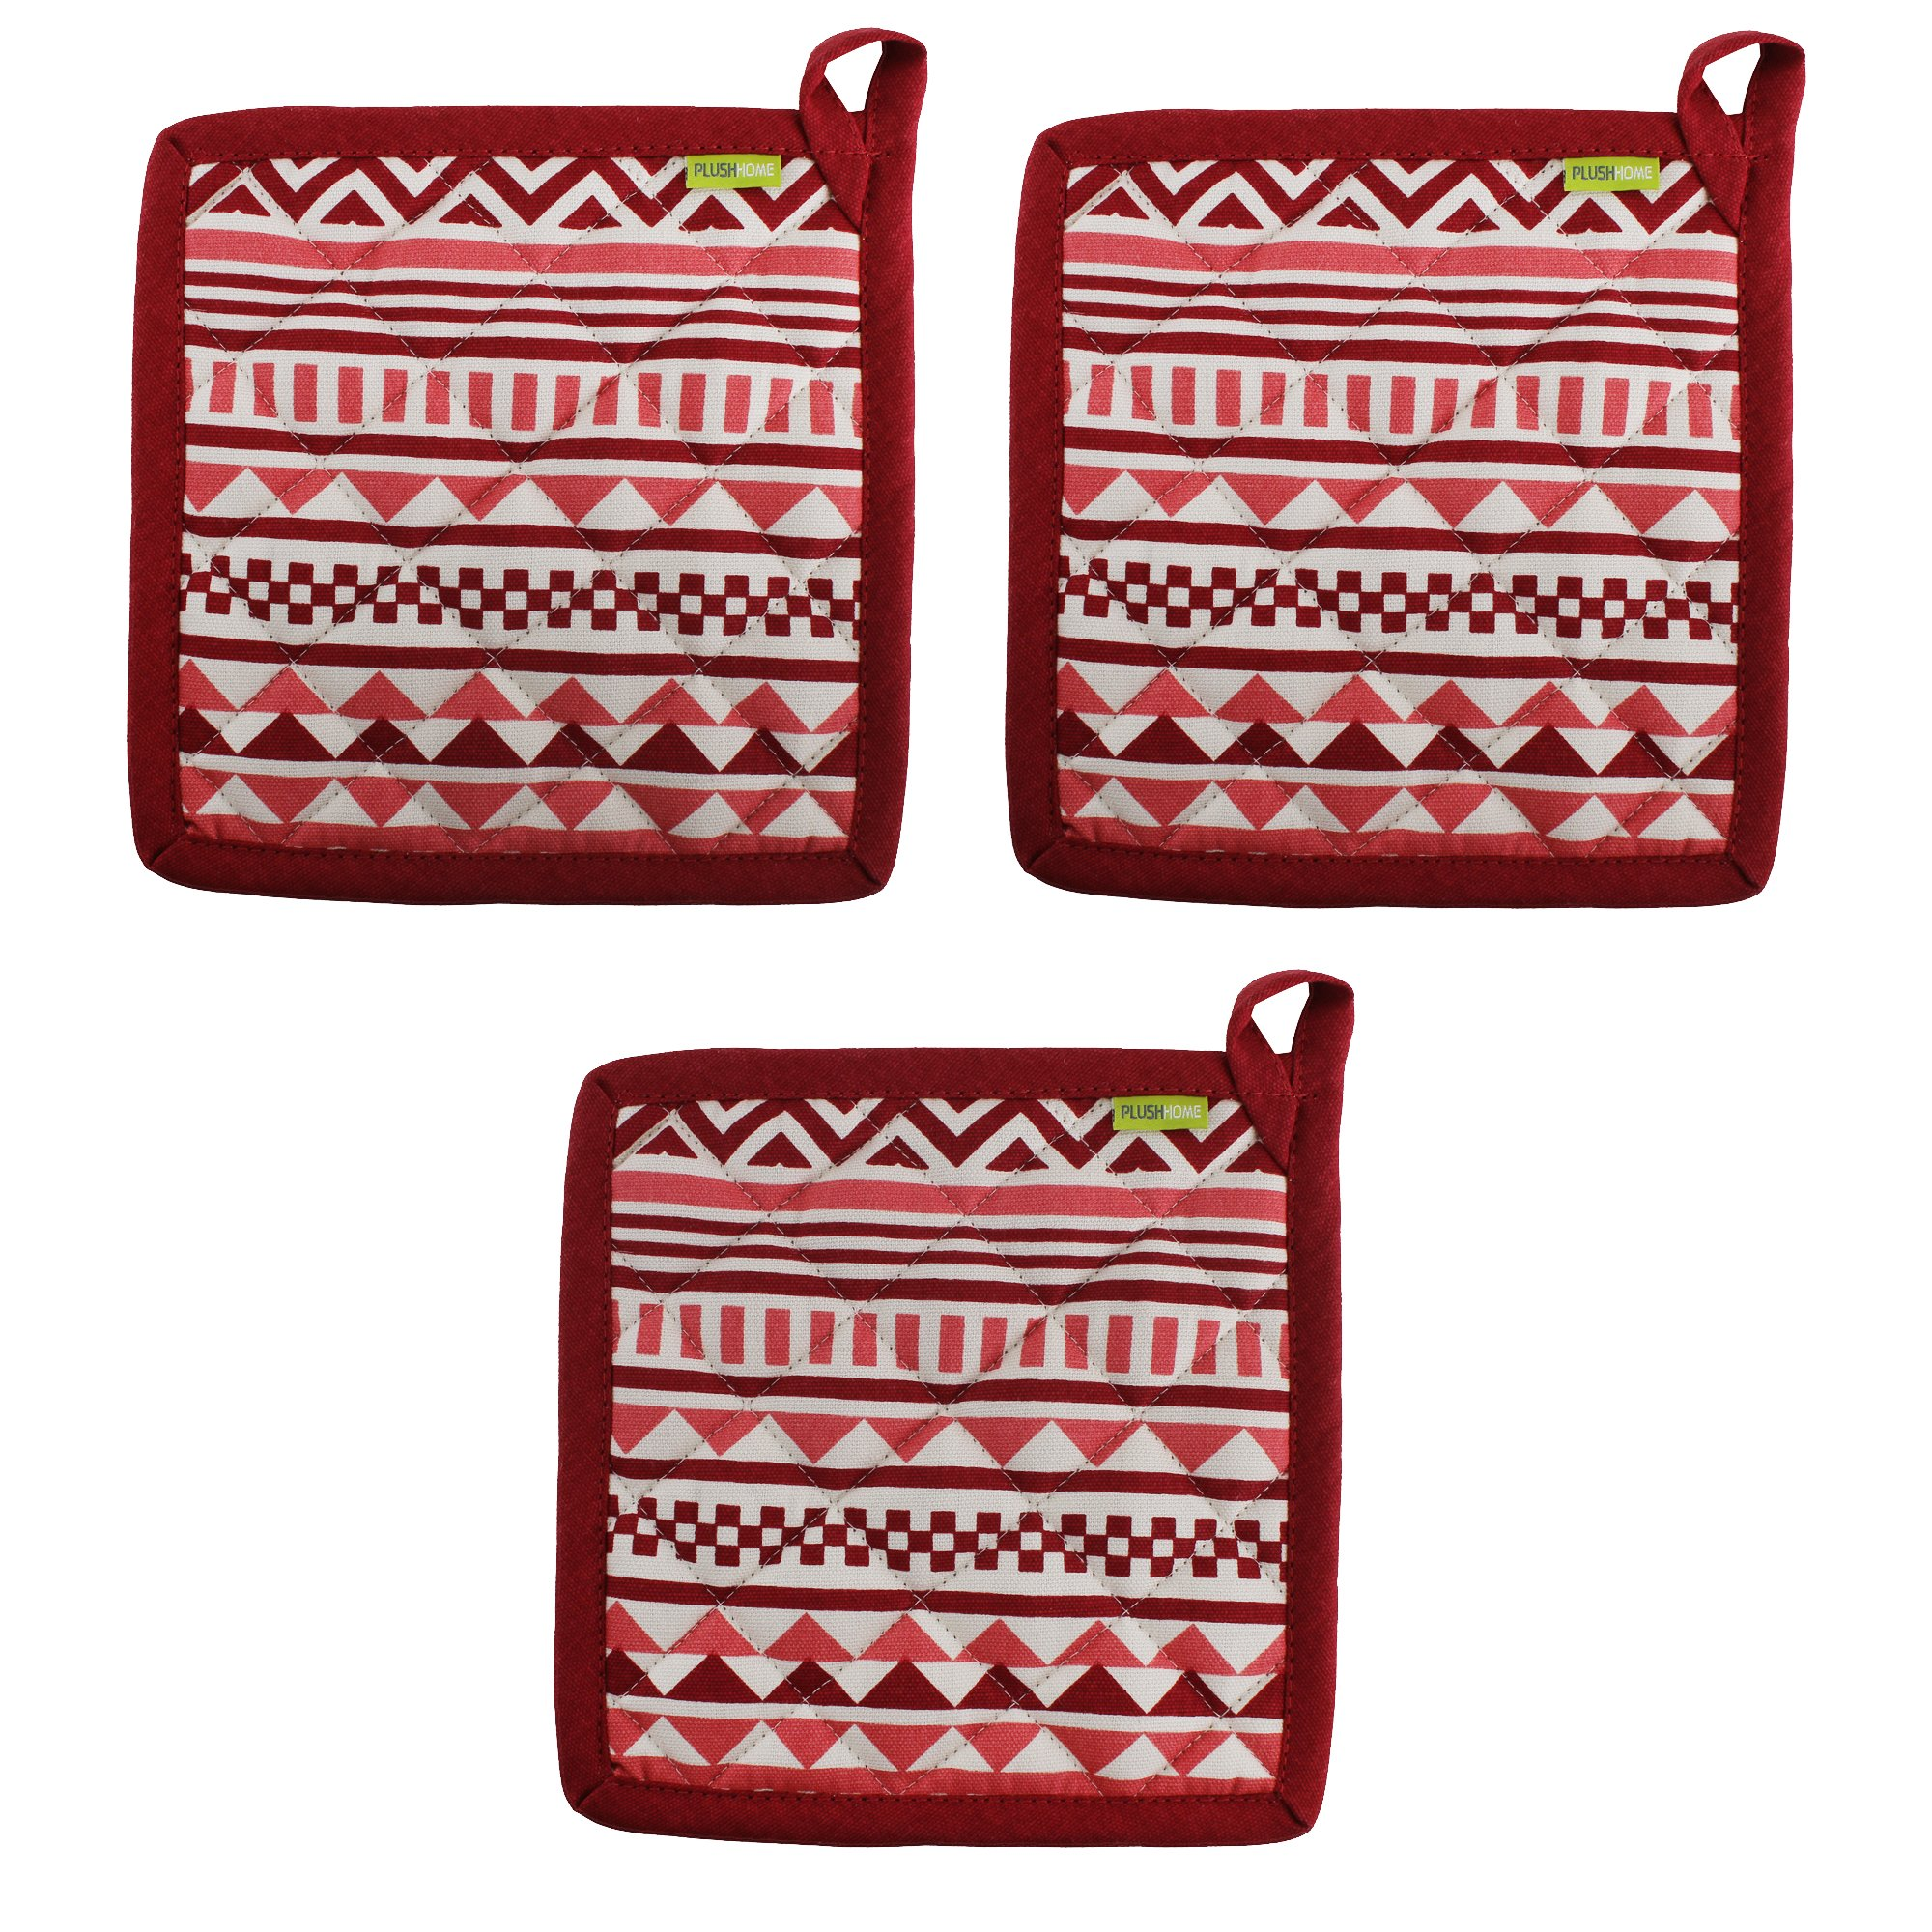 """Set of 3 Pot Holders, 100% Cotton of Size 8""""X8 Inch, Eco-Friendly & Safe, Aztec Design for Kitchen by Plush Home"""